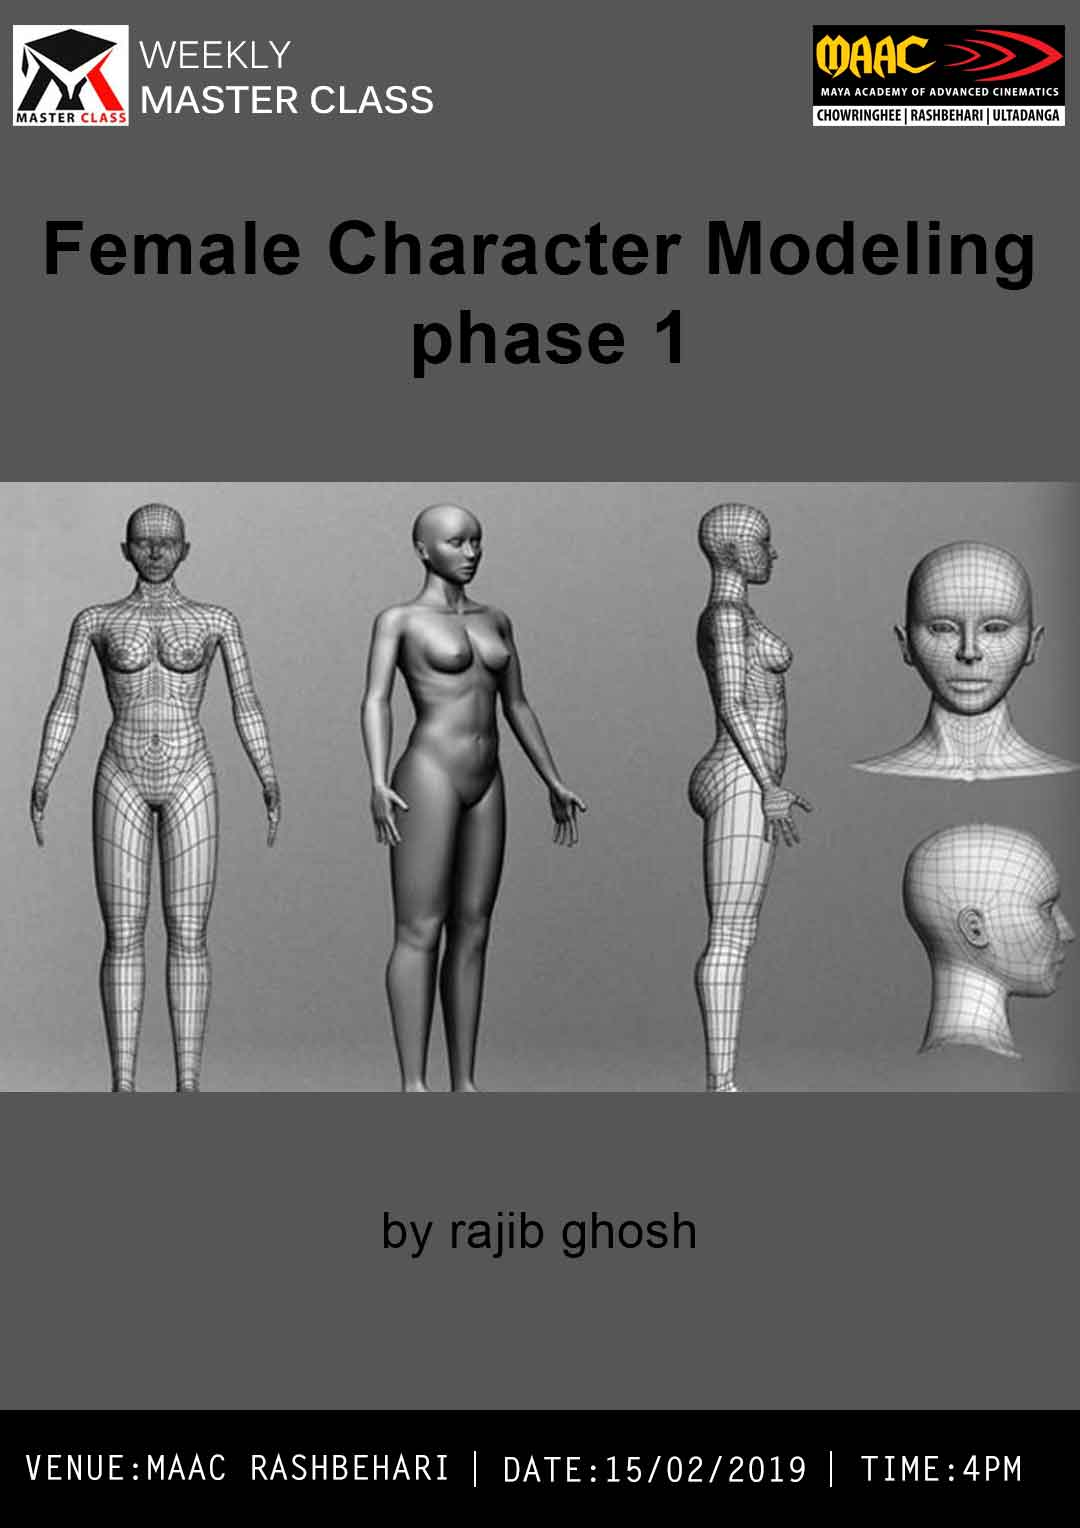 Weekly Master Class on Female Character Modeling Phase 1